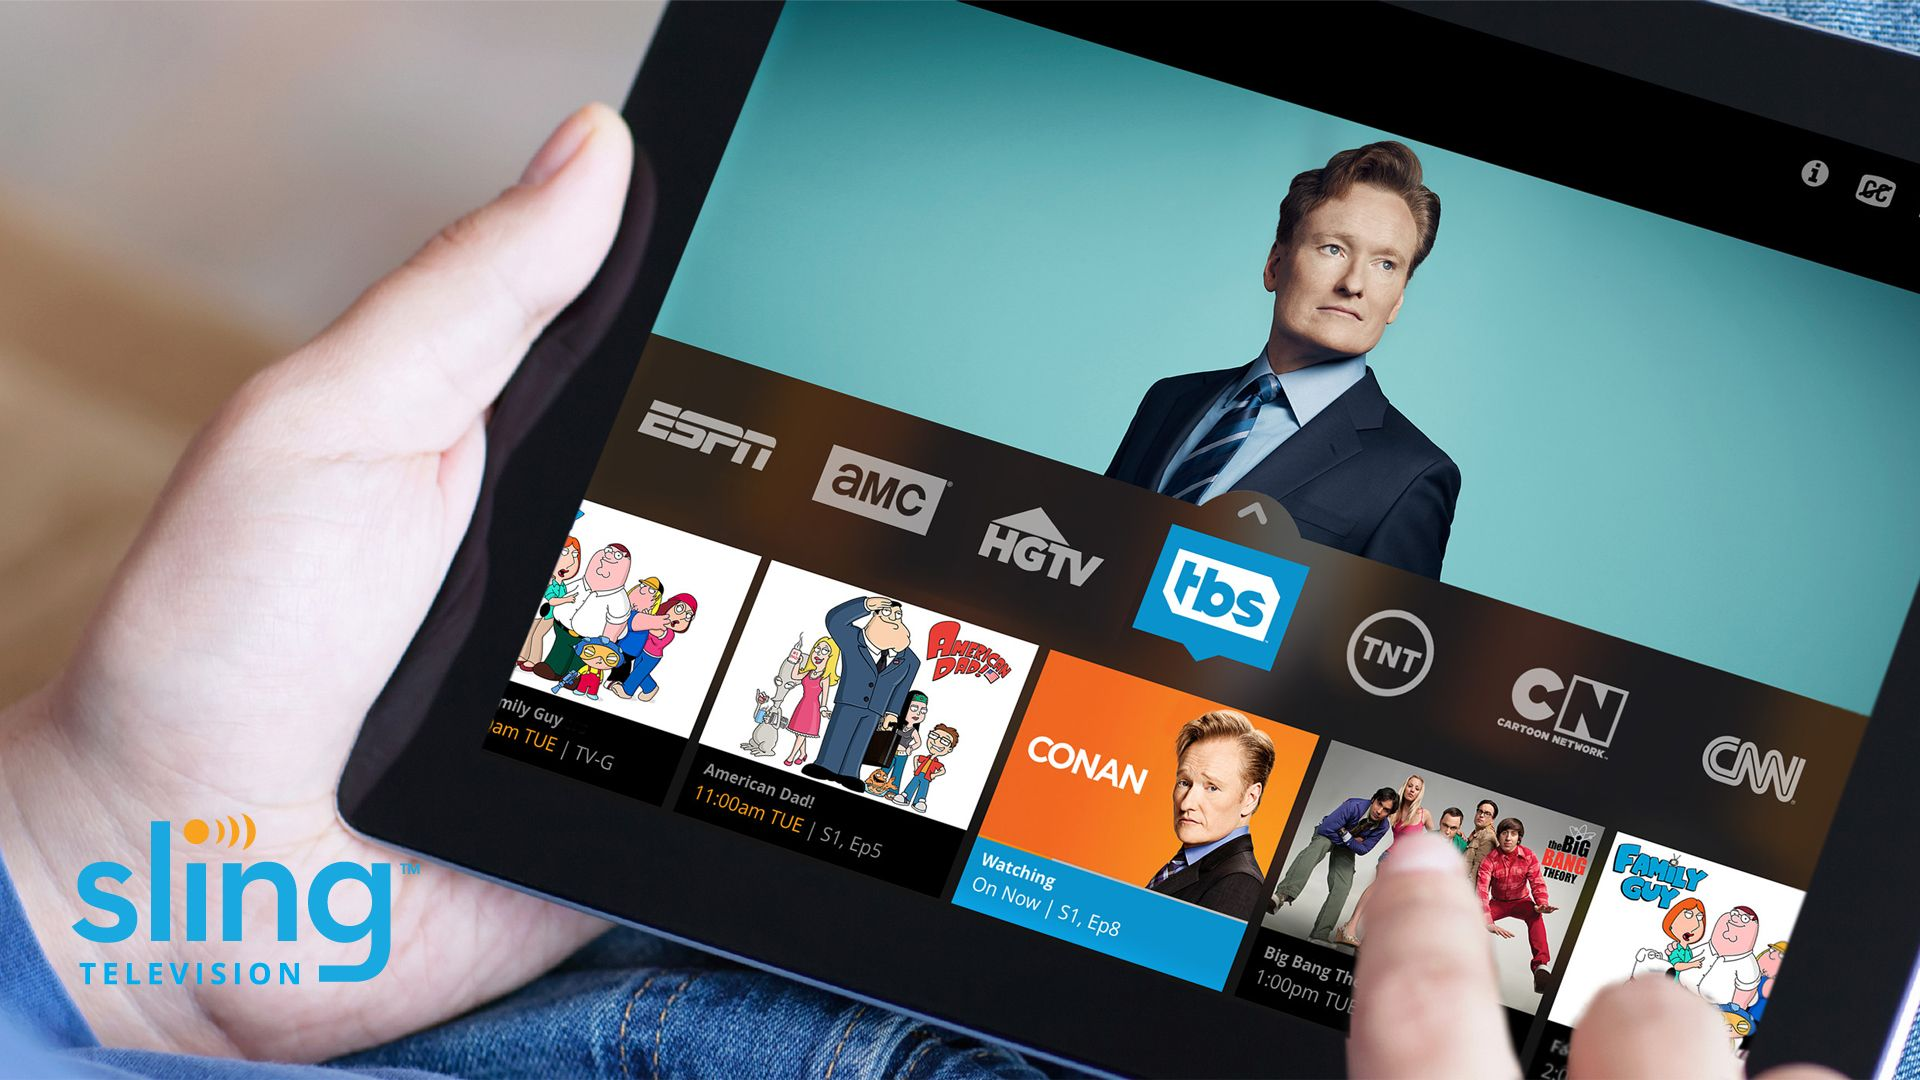 Sling TV price hike raises streaming service's cost by 5